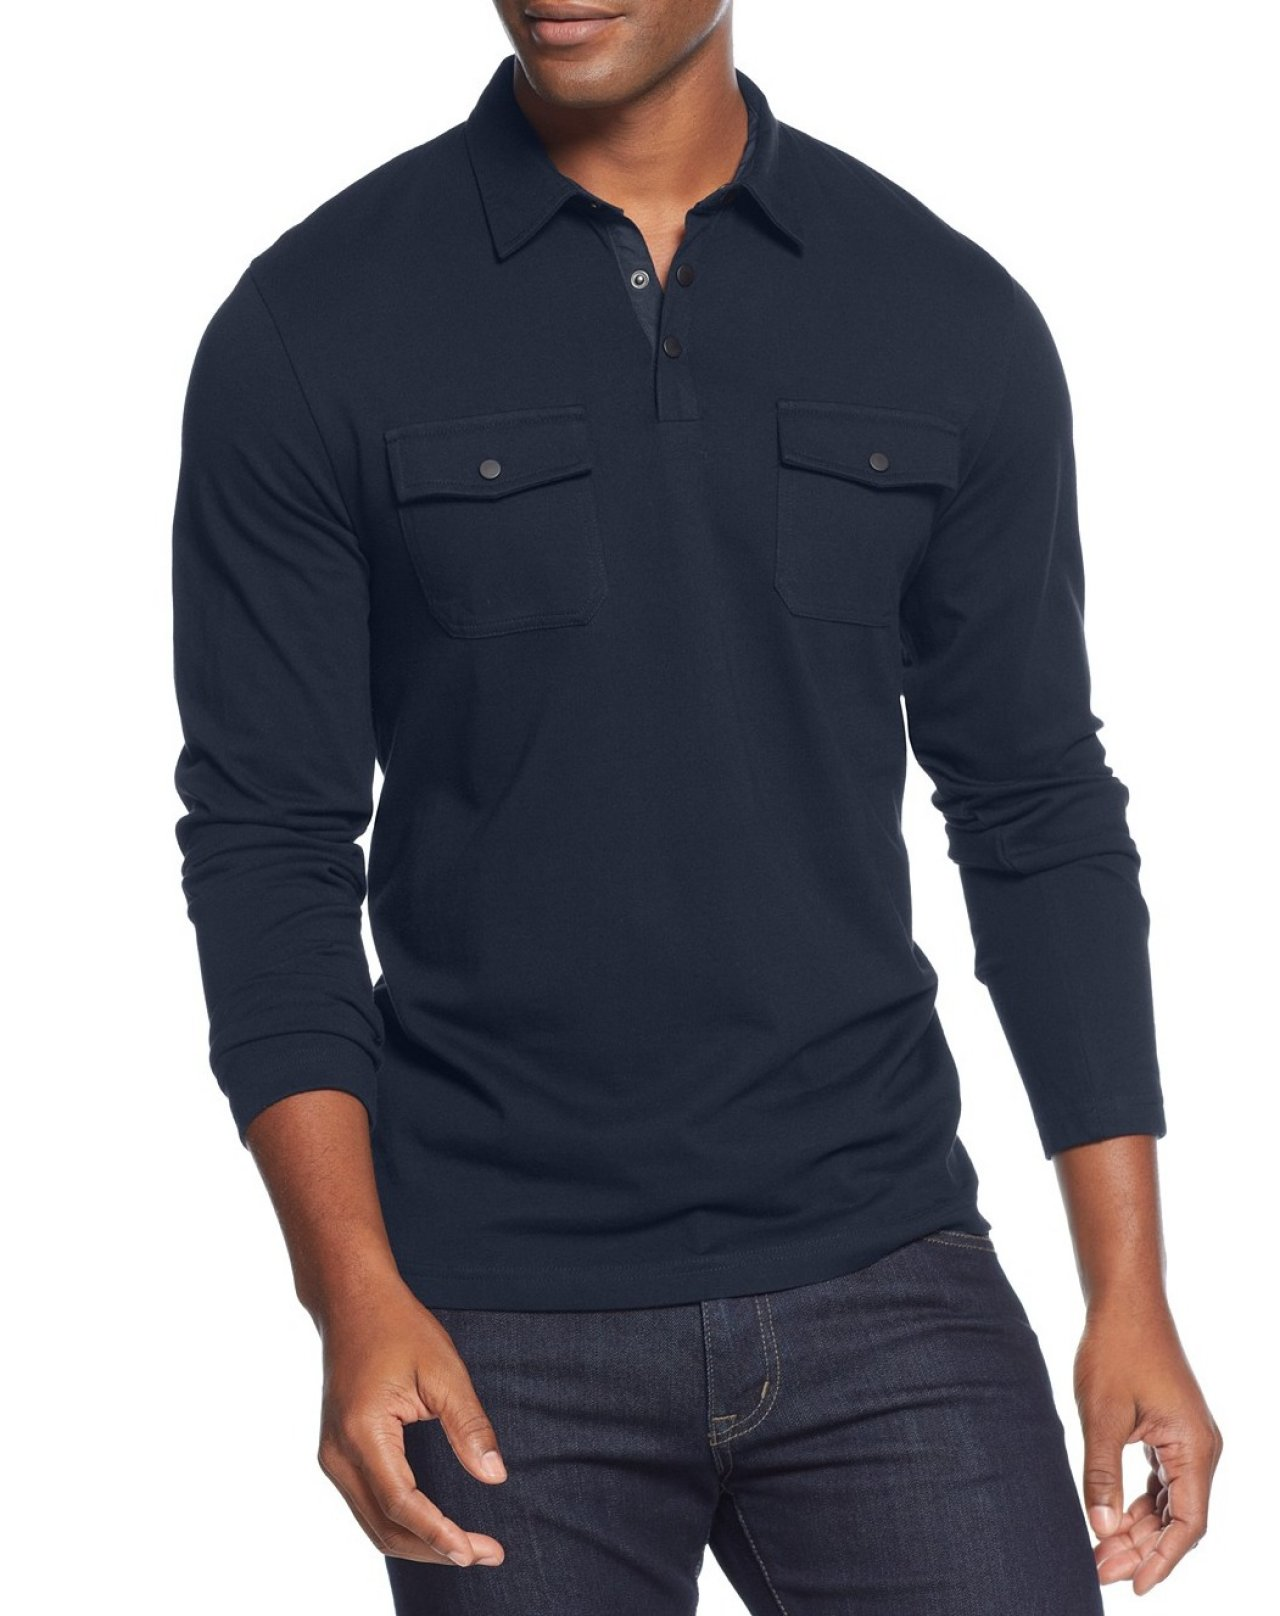 Alfani new neo navy blue mens 4xlt long sleeve two pocket for Xlt long sleeve polo shirts